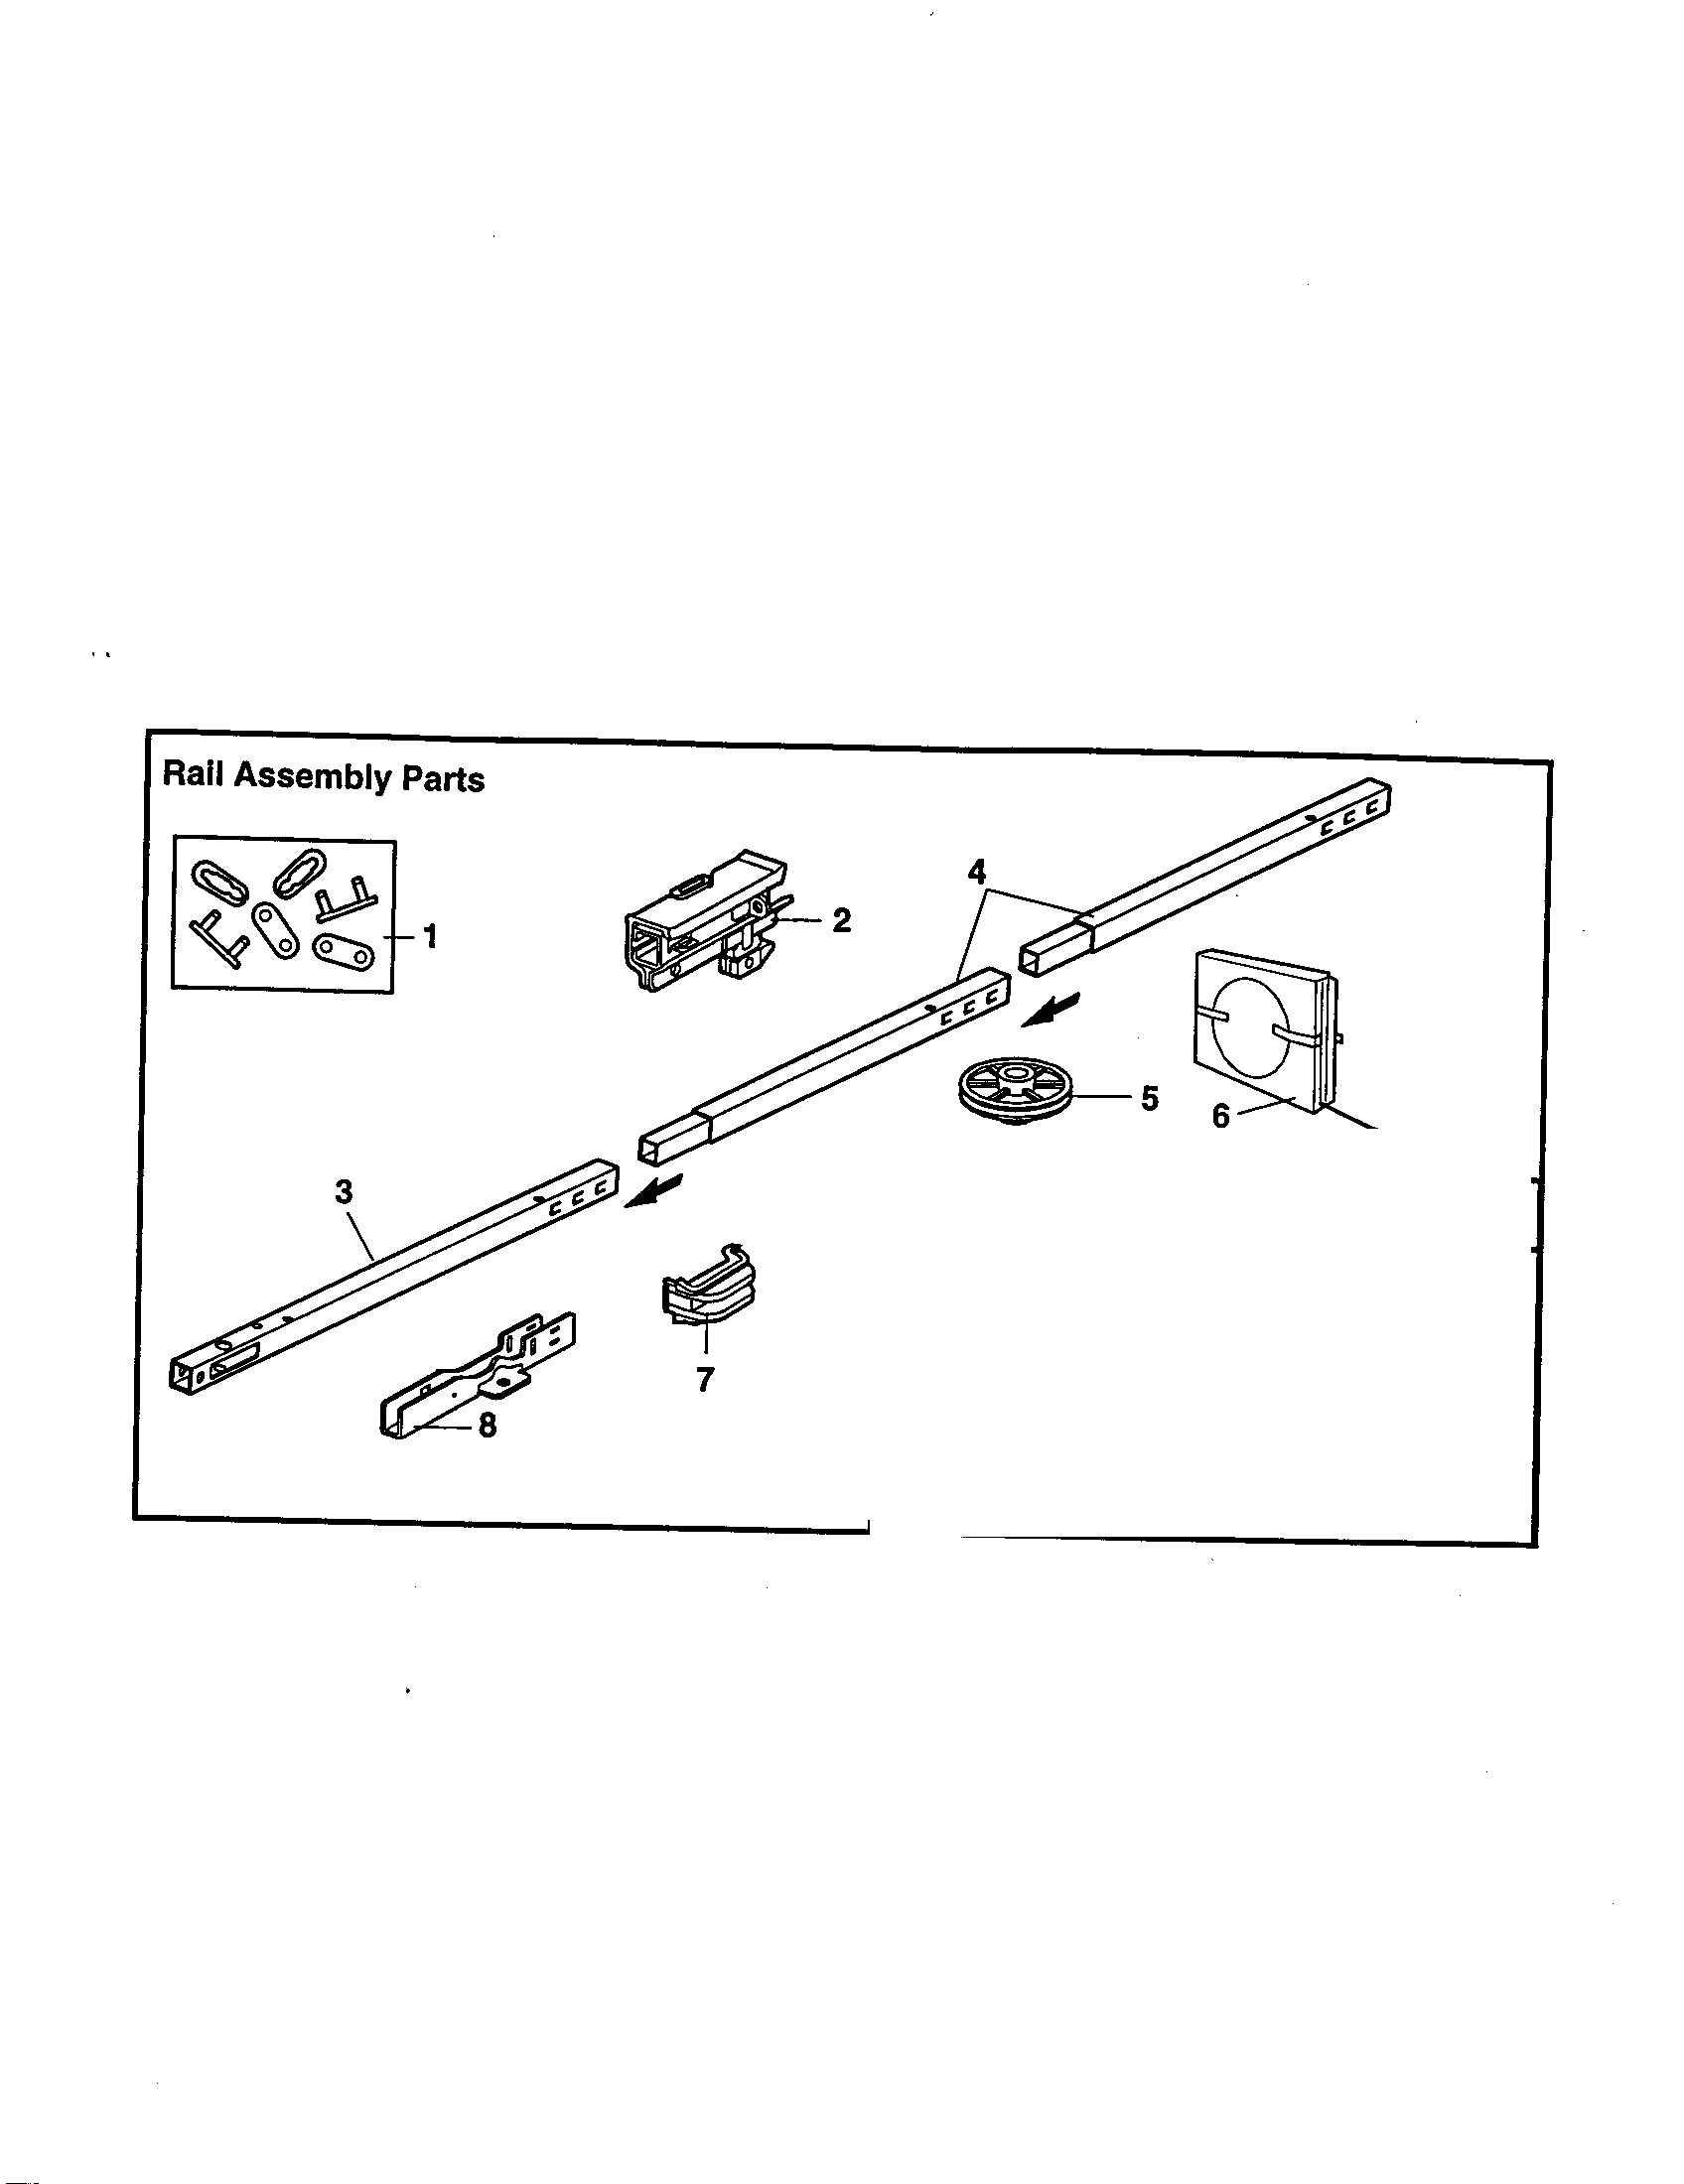 hight resolution of garage door part diagram